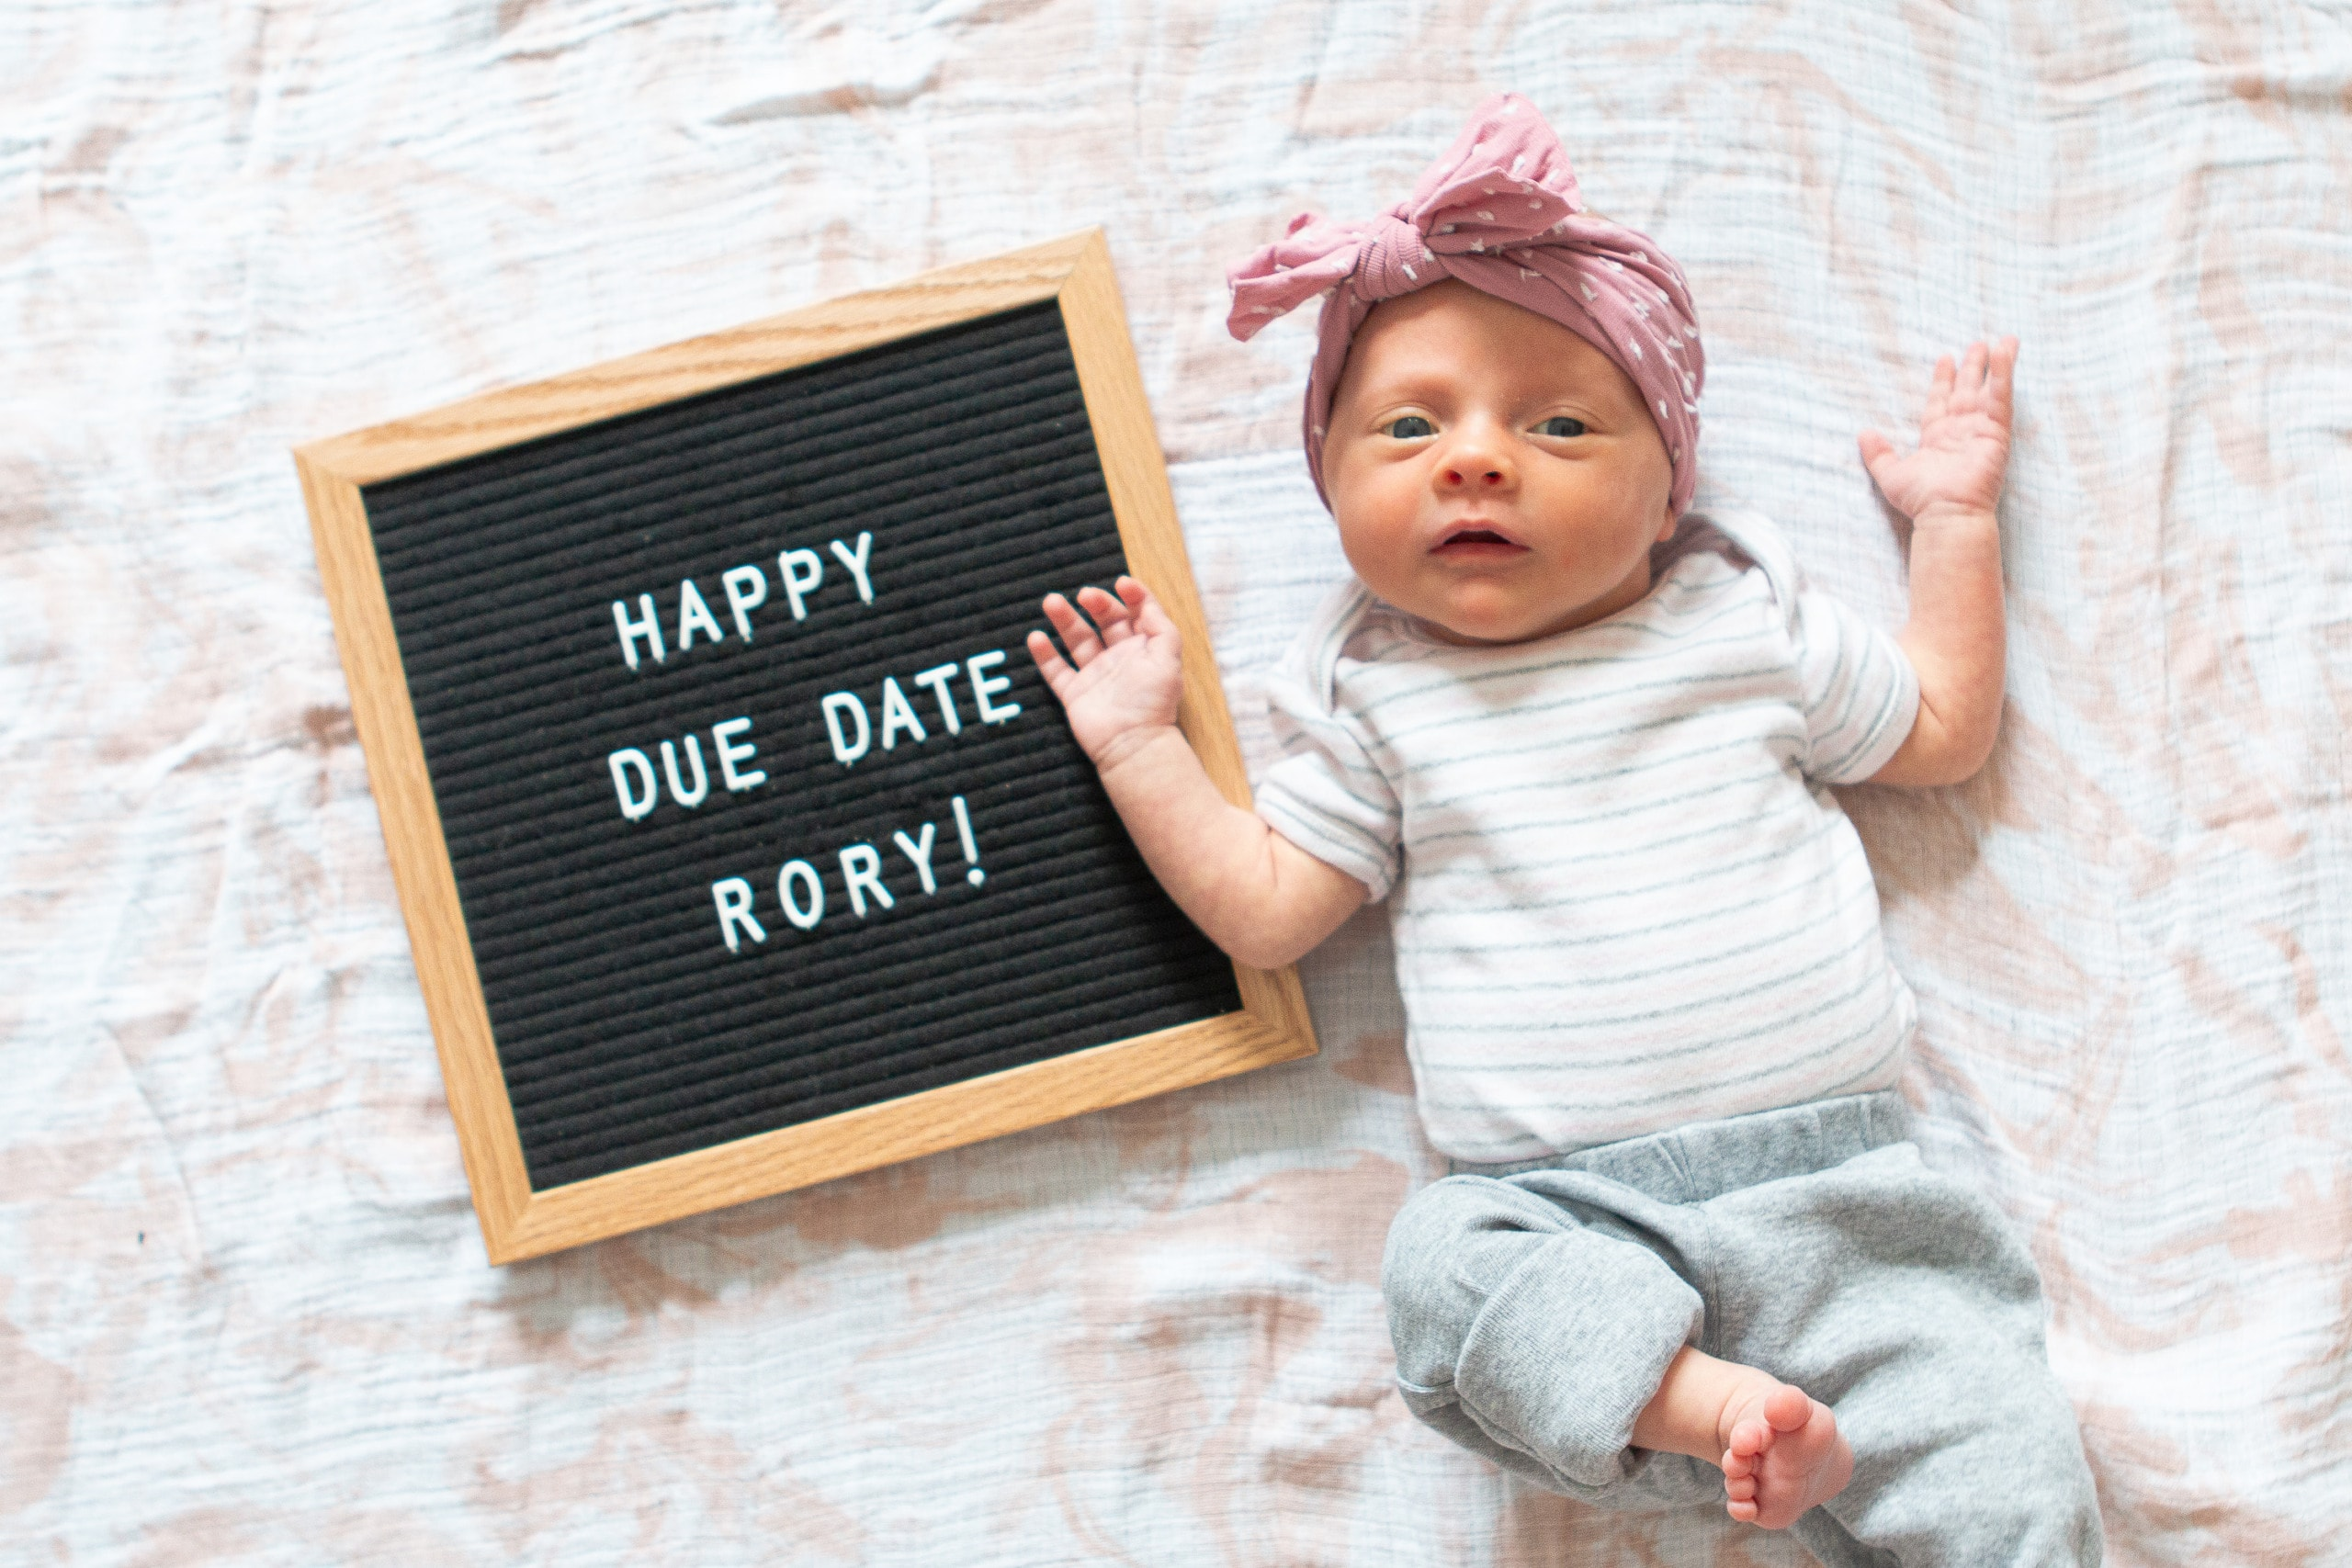 Rory's due date